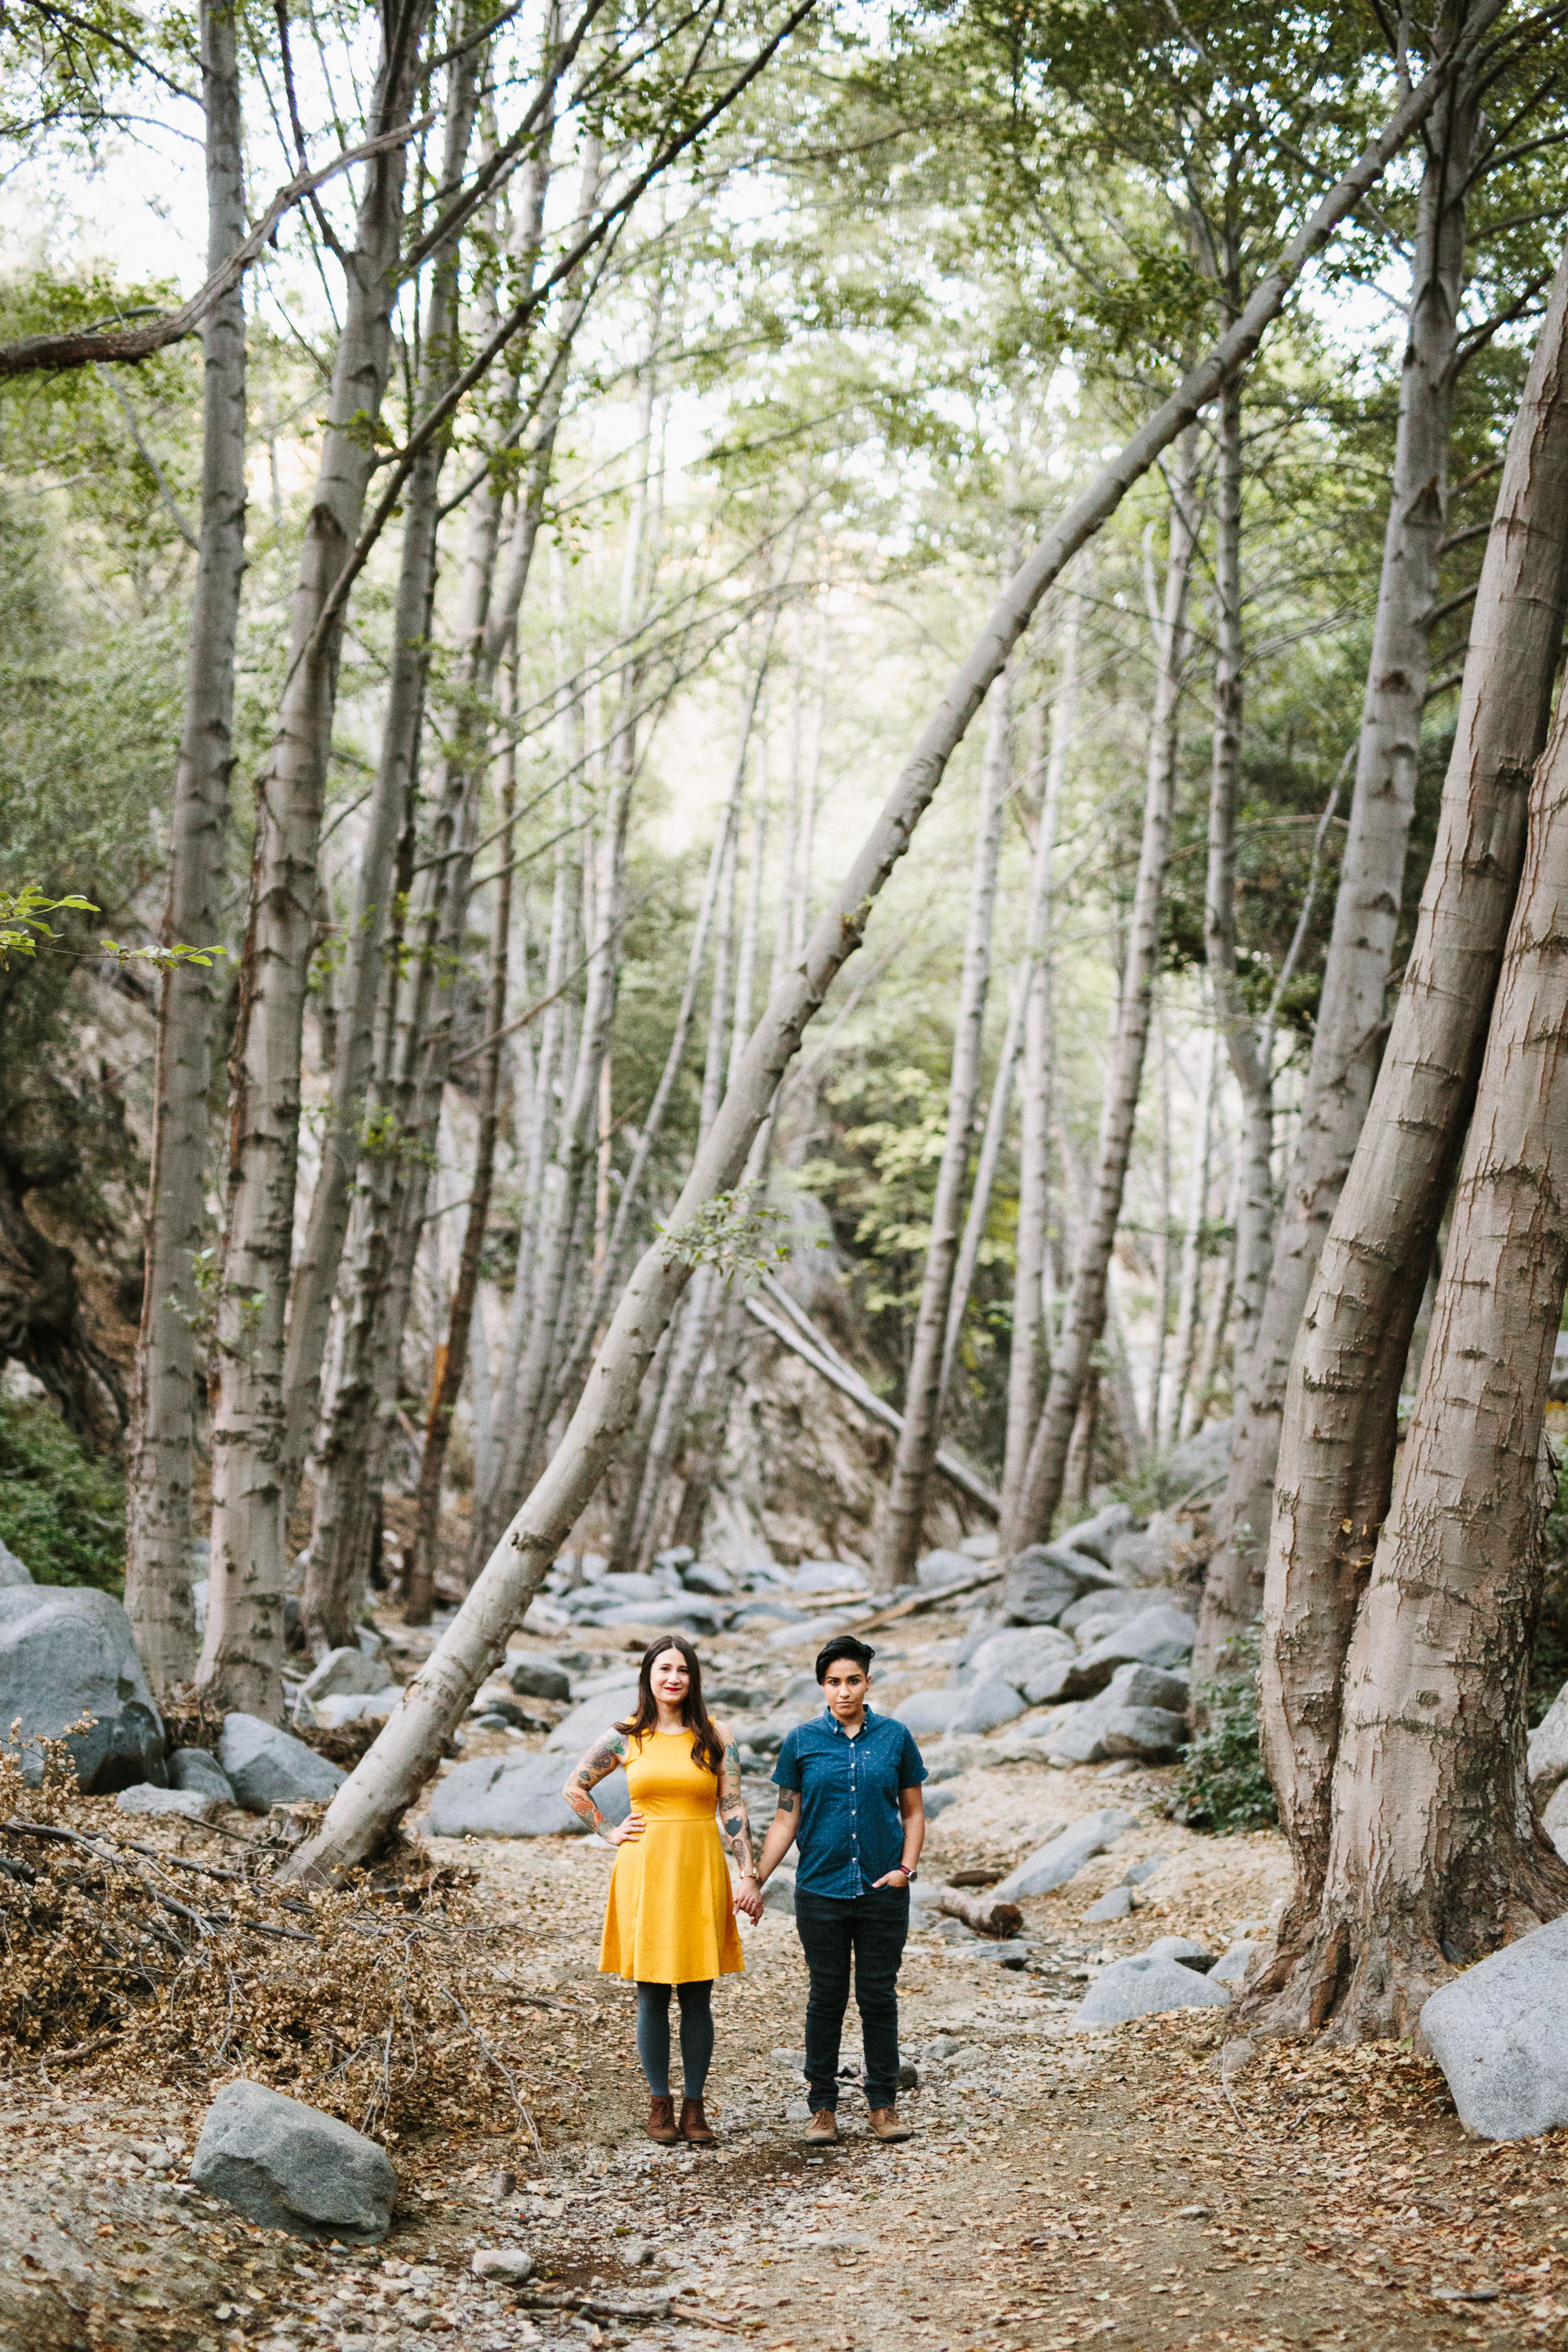 www-marycostaphotography-com-angeles-national-forest-engagement-0001